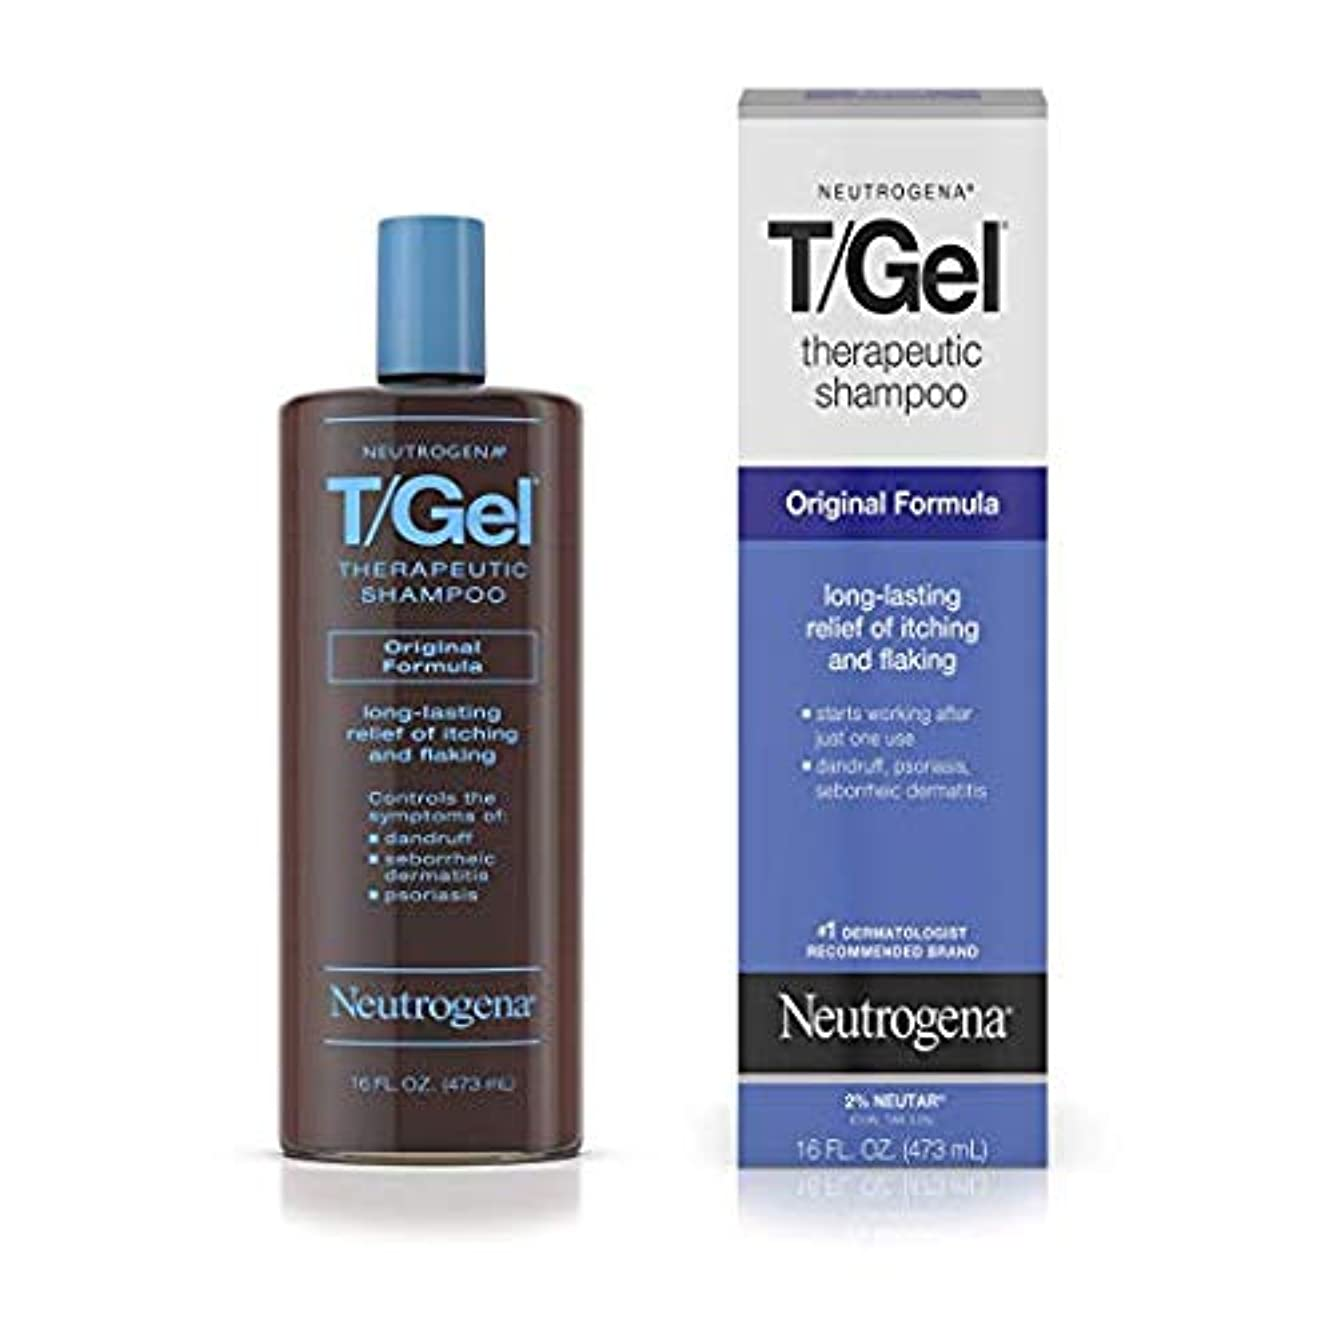 価値のない到着歴史Neutrogena T/Gel Therapeutic Shampoo Original Formula [並行輸入品]